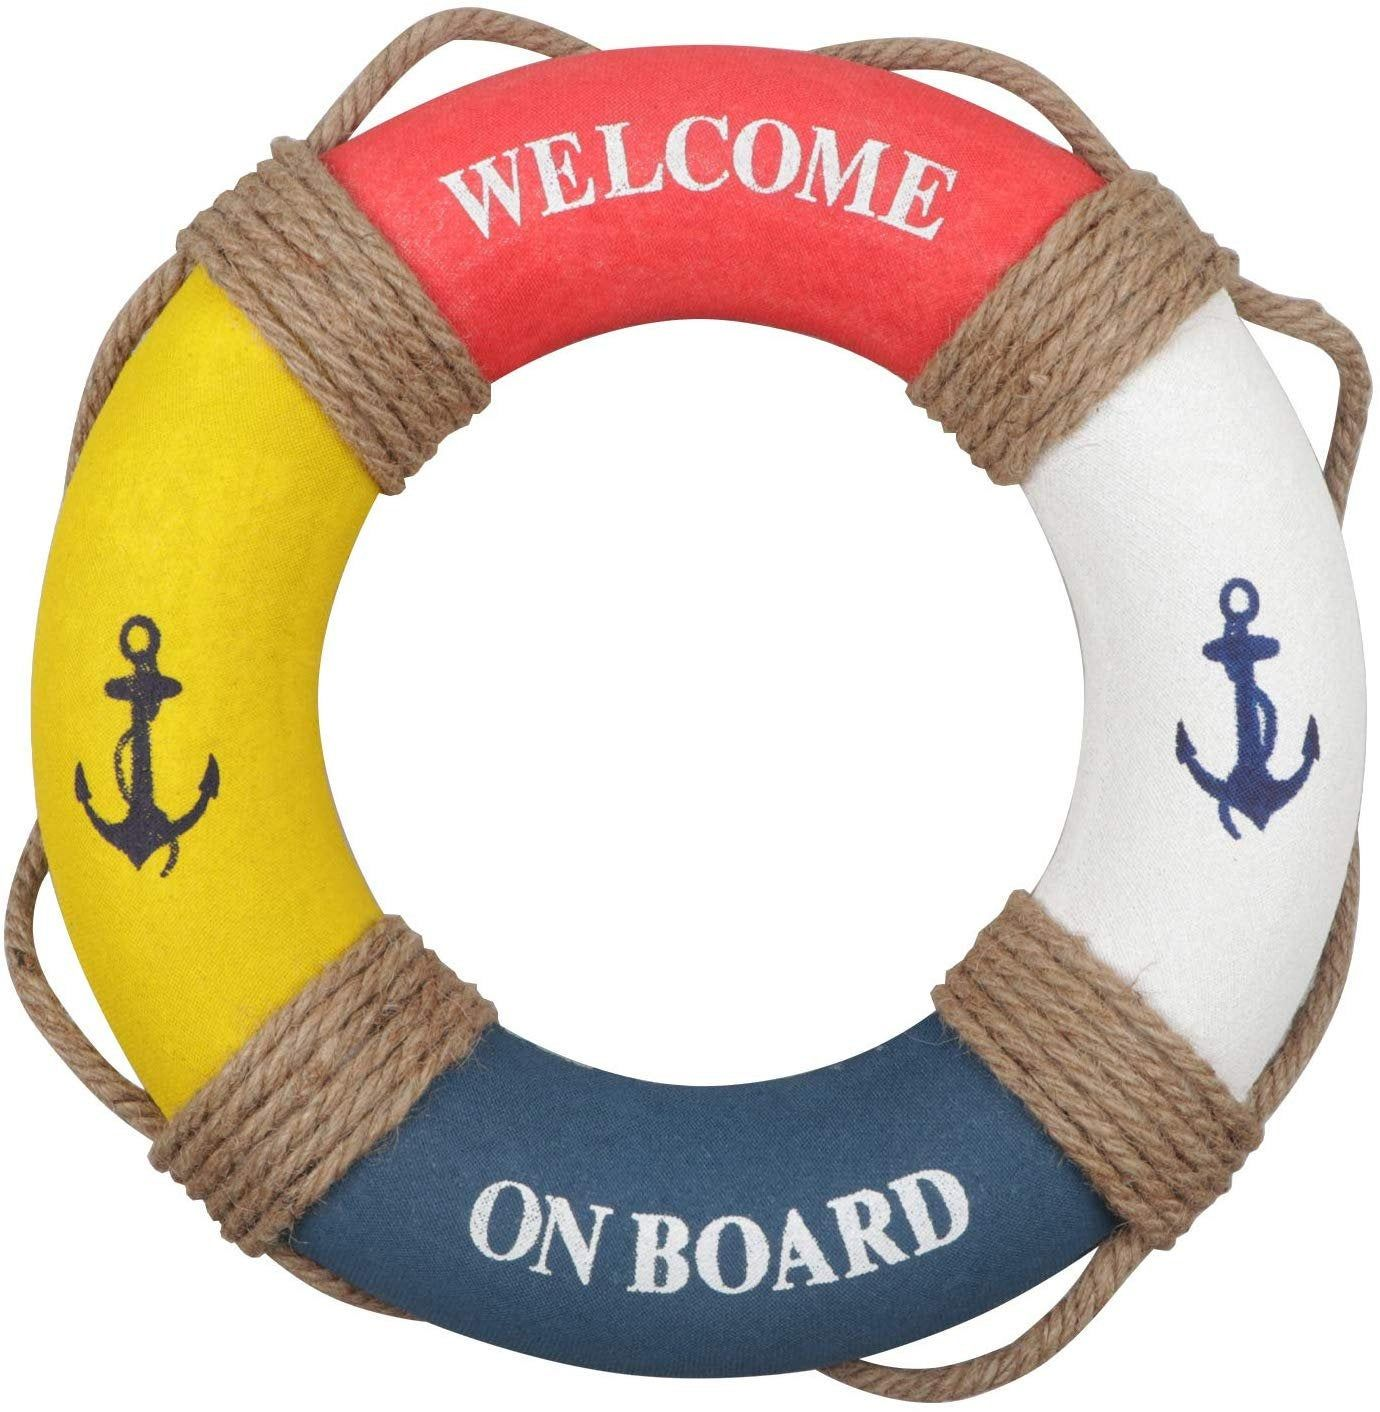 Nautical Life Ring Wall Decorations; Beach Home Decor; Welcome Aboard Life Ring: Baby on Board Baby Shower; Nautical nursery wall decoration